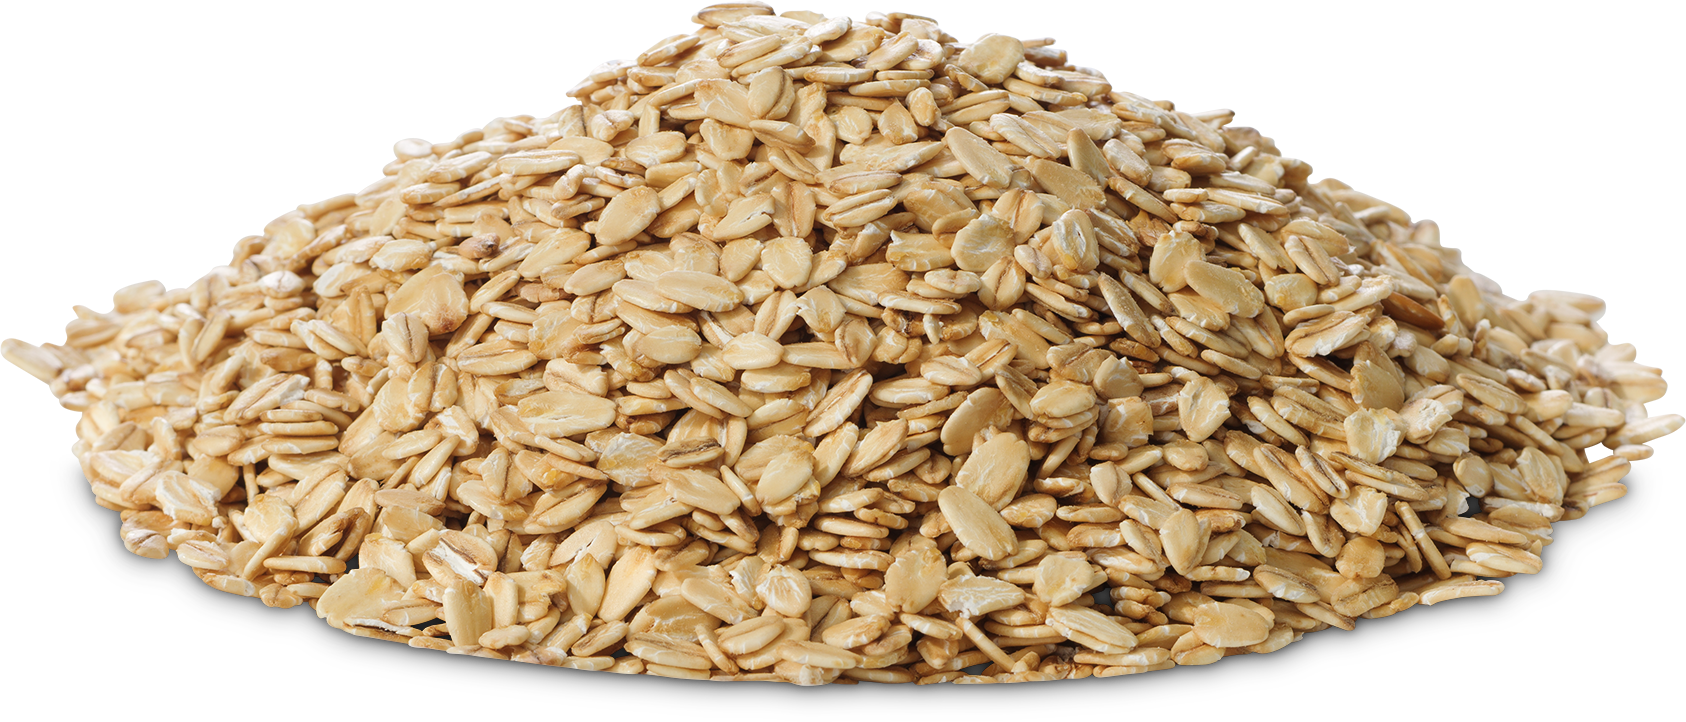 Transparent cereal oat. Png images pluspng flakes